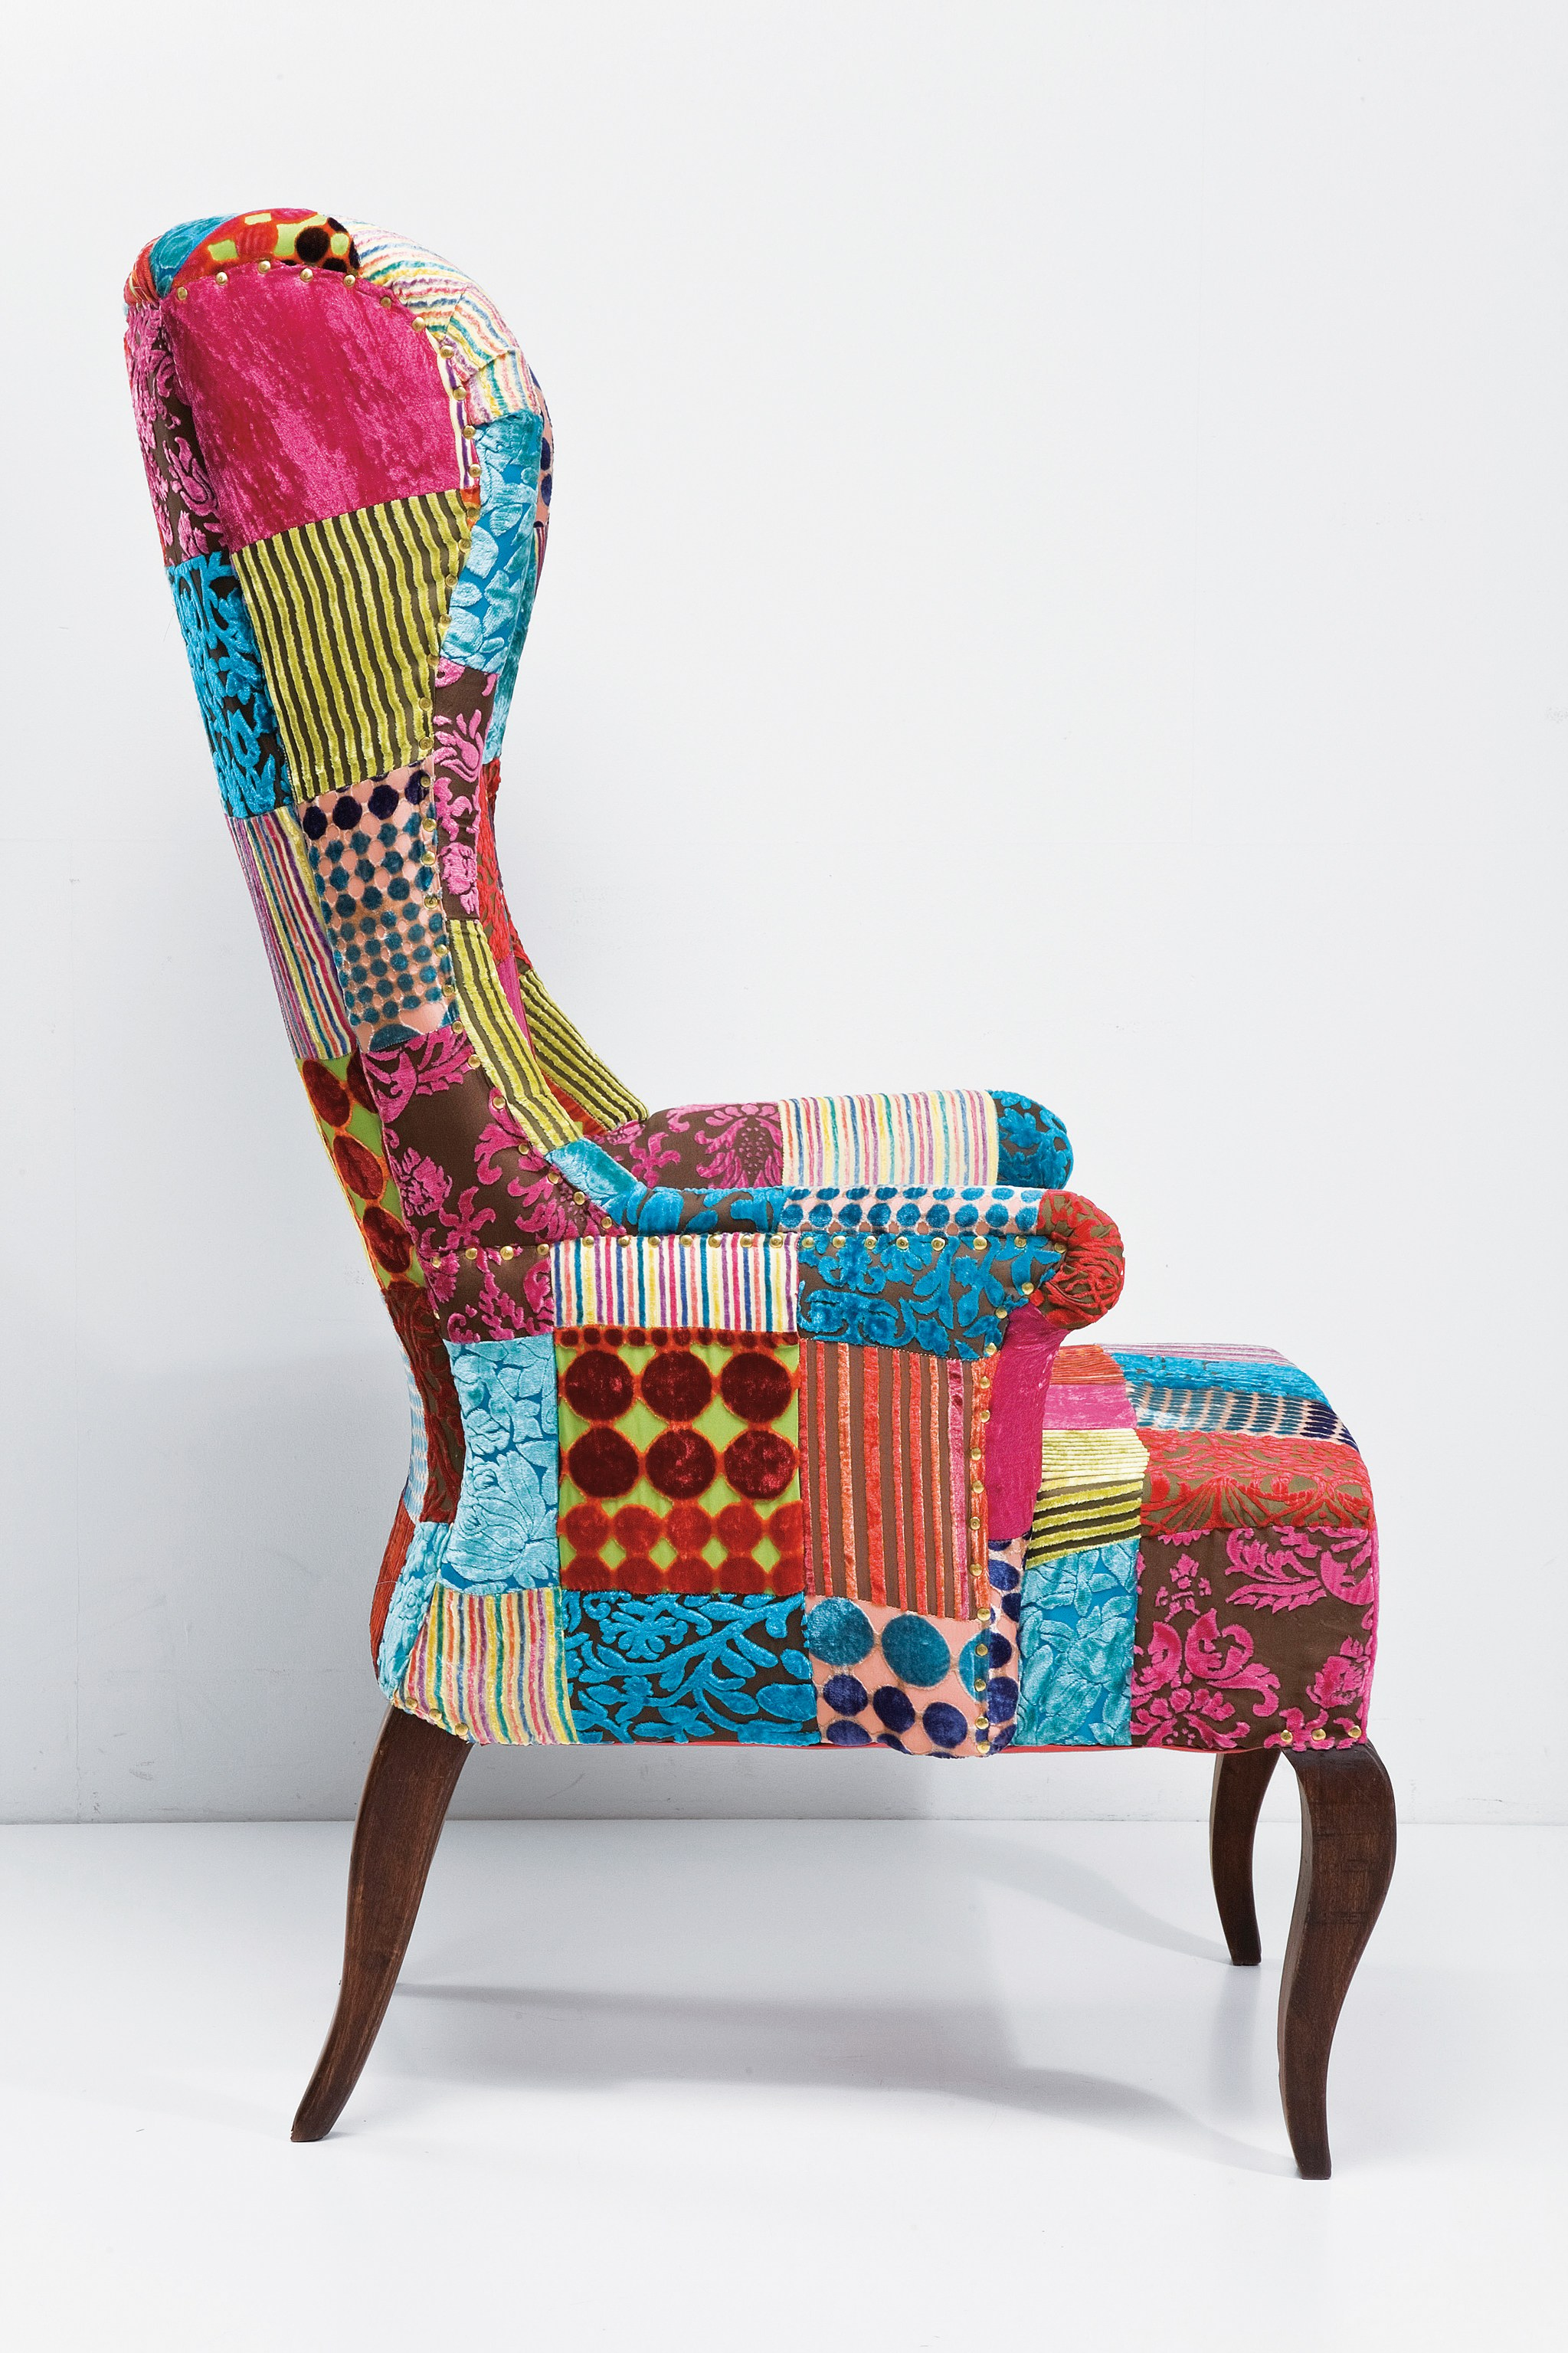 Patchwork Chair Furniture